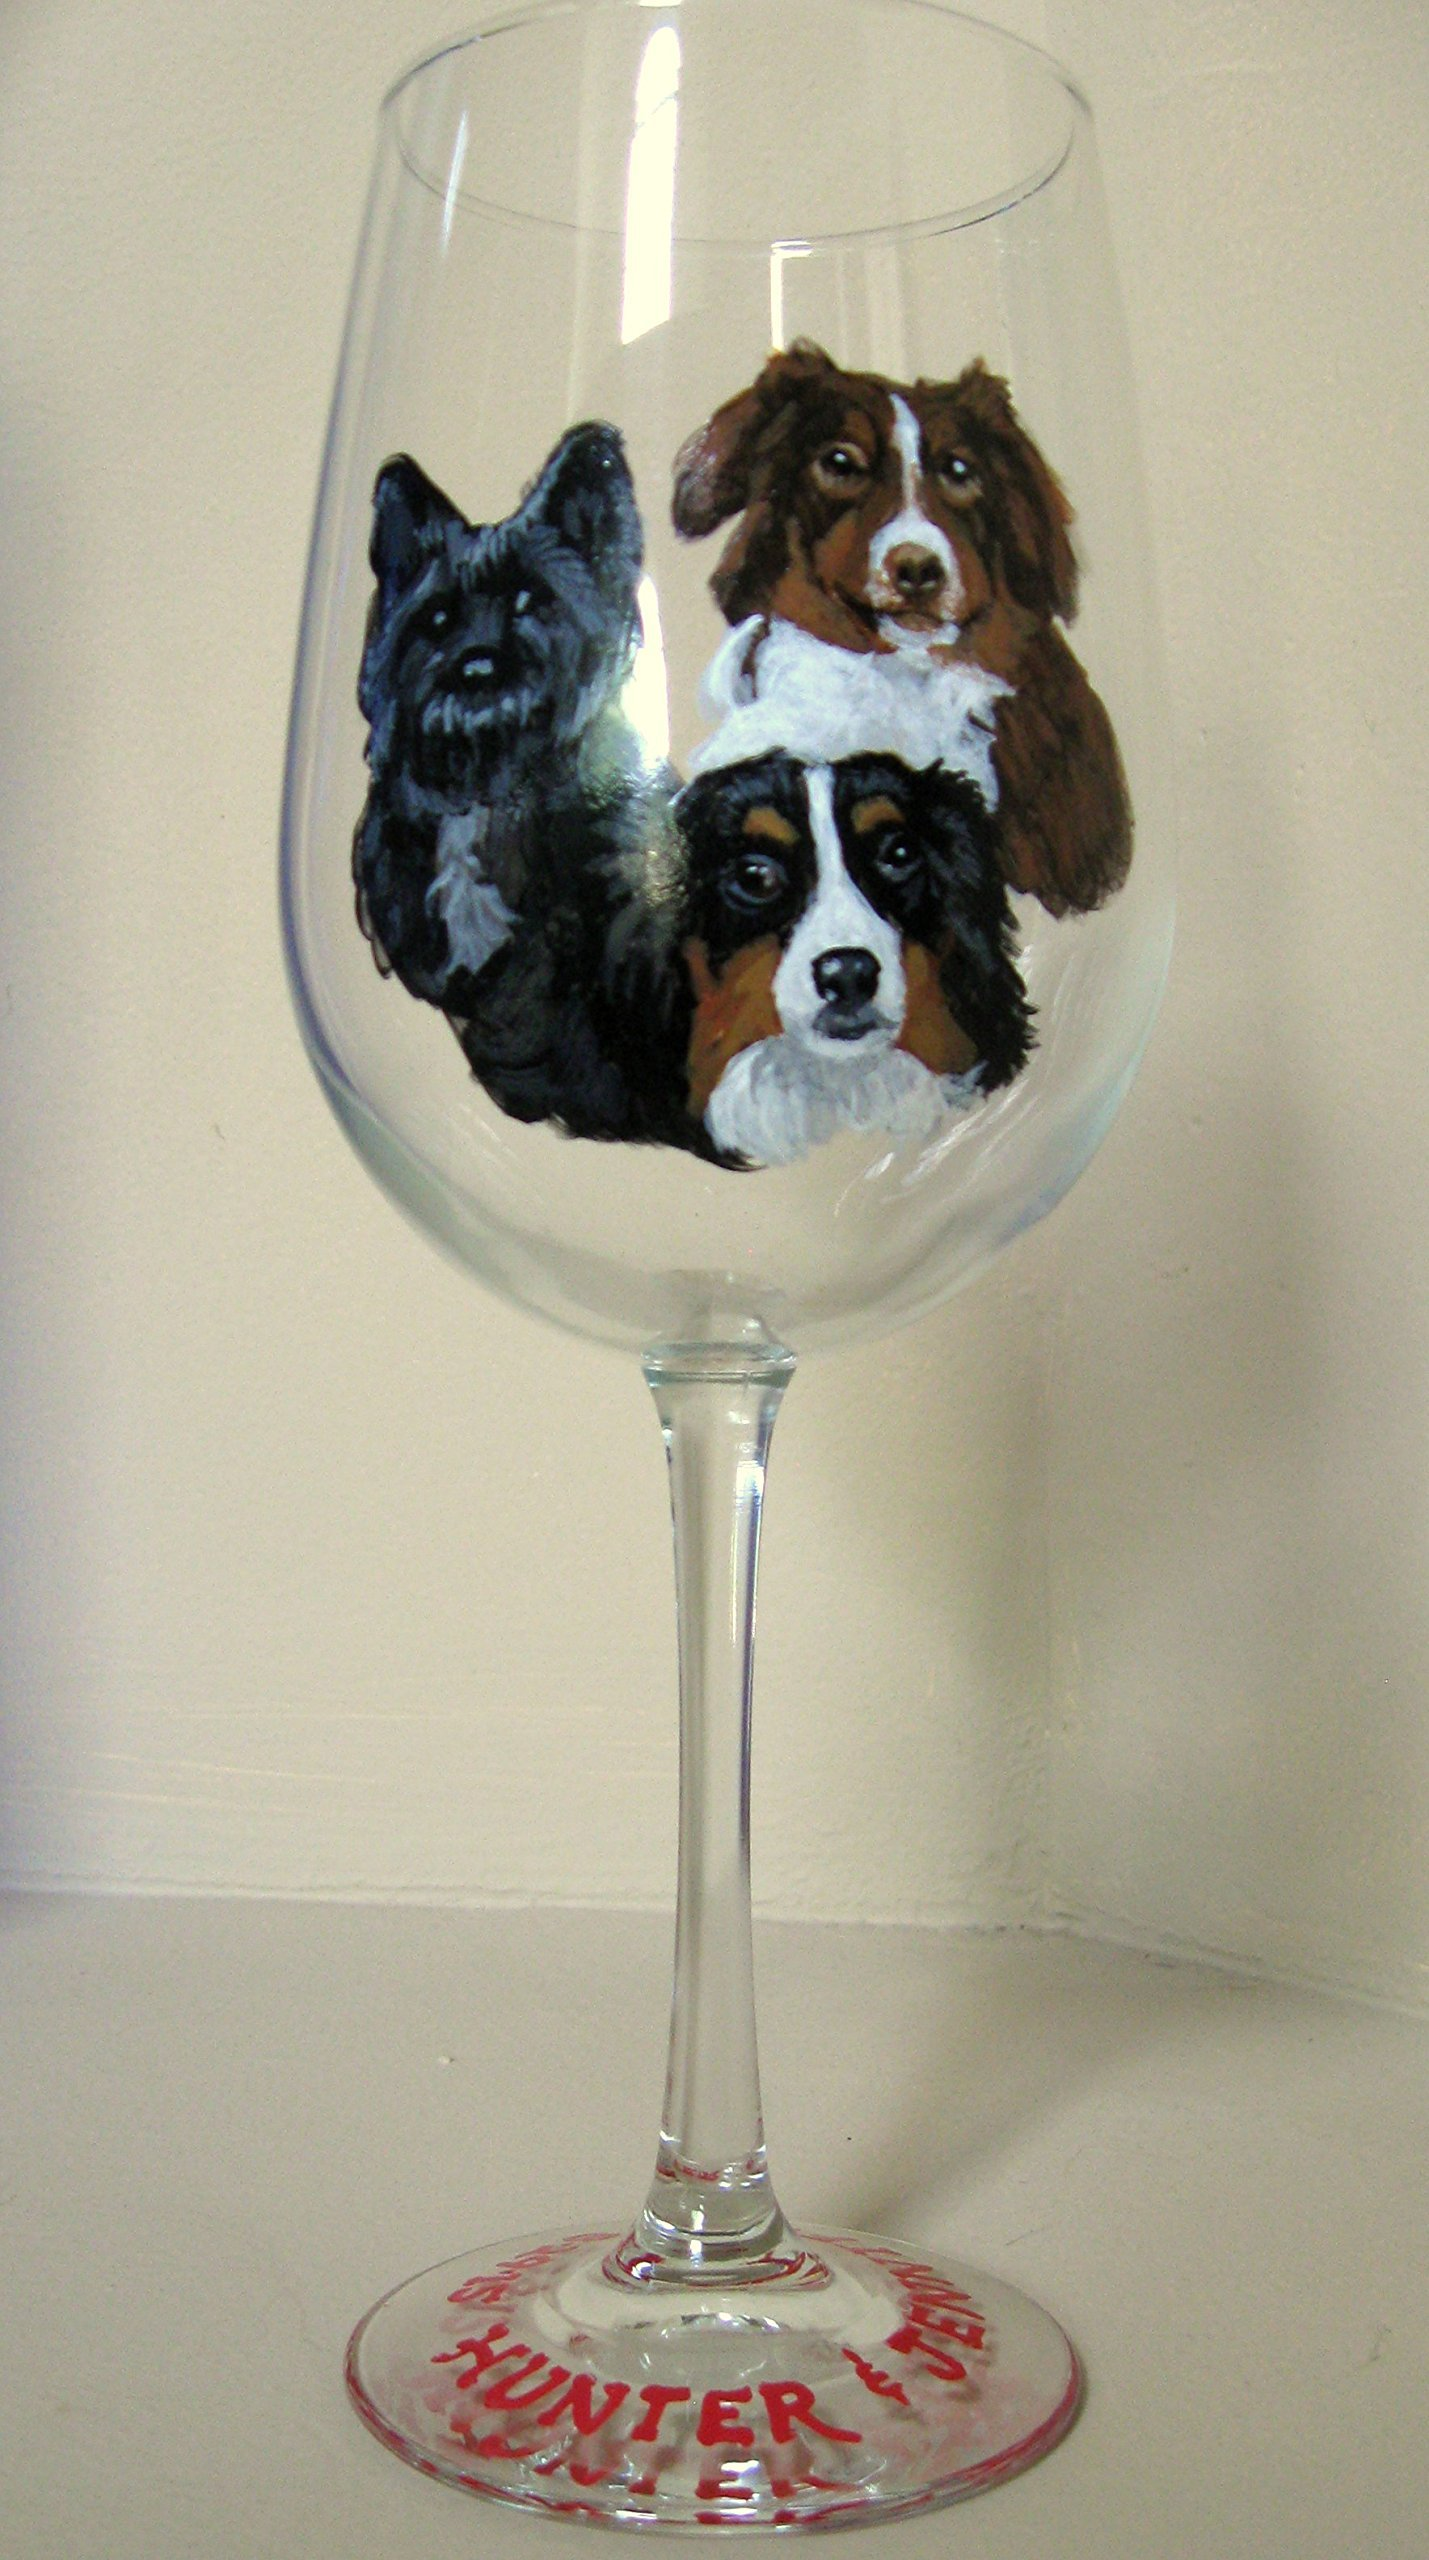 Art, Painted Wine Glass, Custom Dog, Cocktail Glass, Pet Portrait, Hand Painted Dog, Personalized Animal Art, Original Art